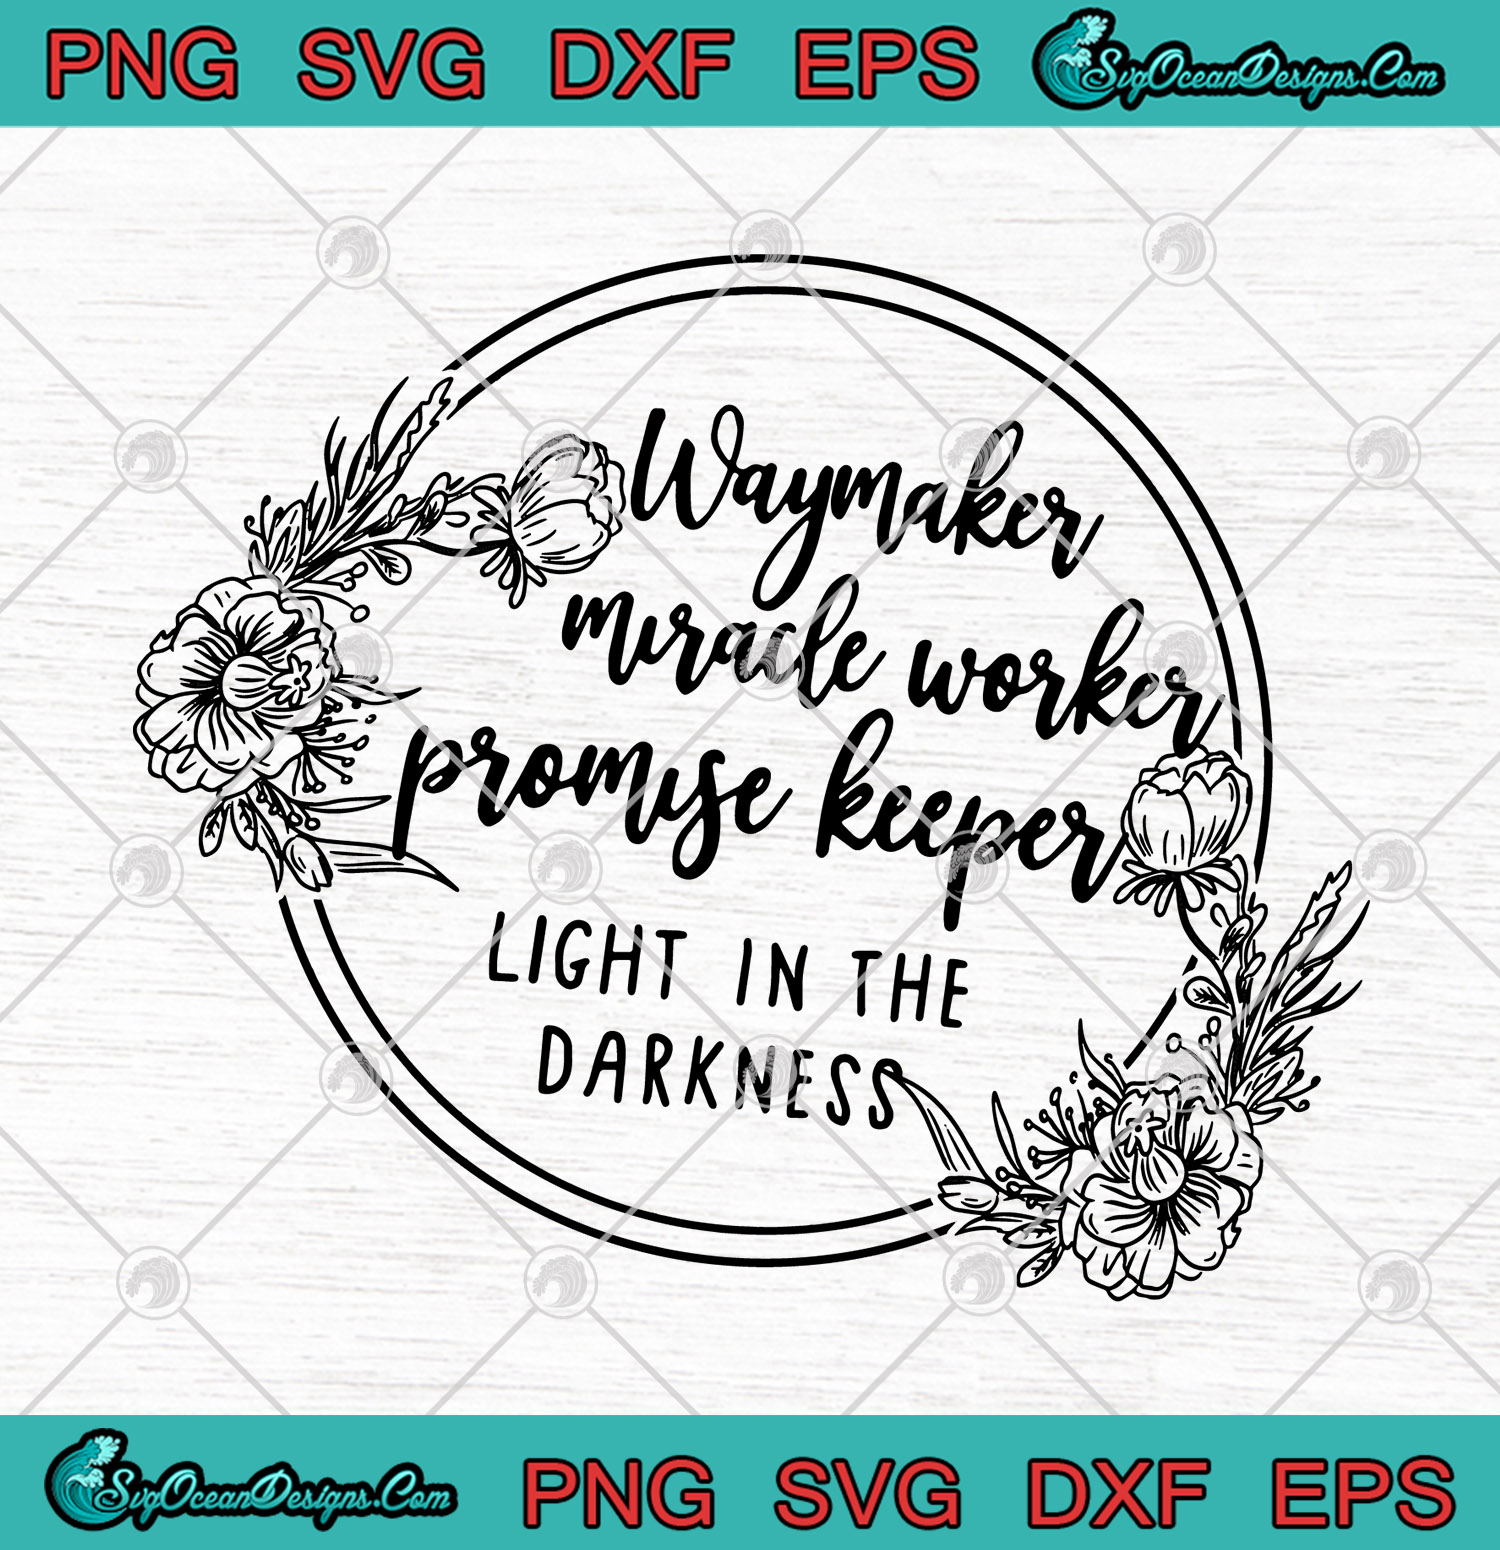 Sinach Way Maker Miracle Worker Promise Keeper Light In The Darkness Svg Png Eps Dxf Cutting File Cricut Silhouette Art Designs Digital Download